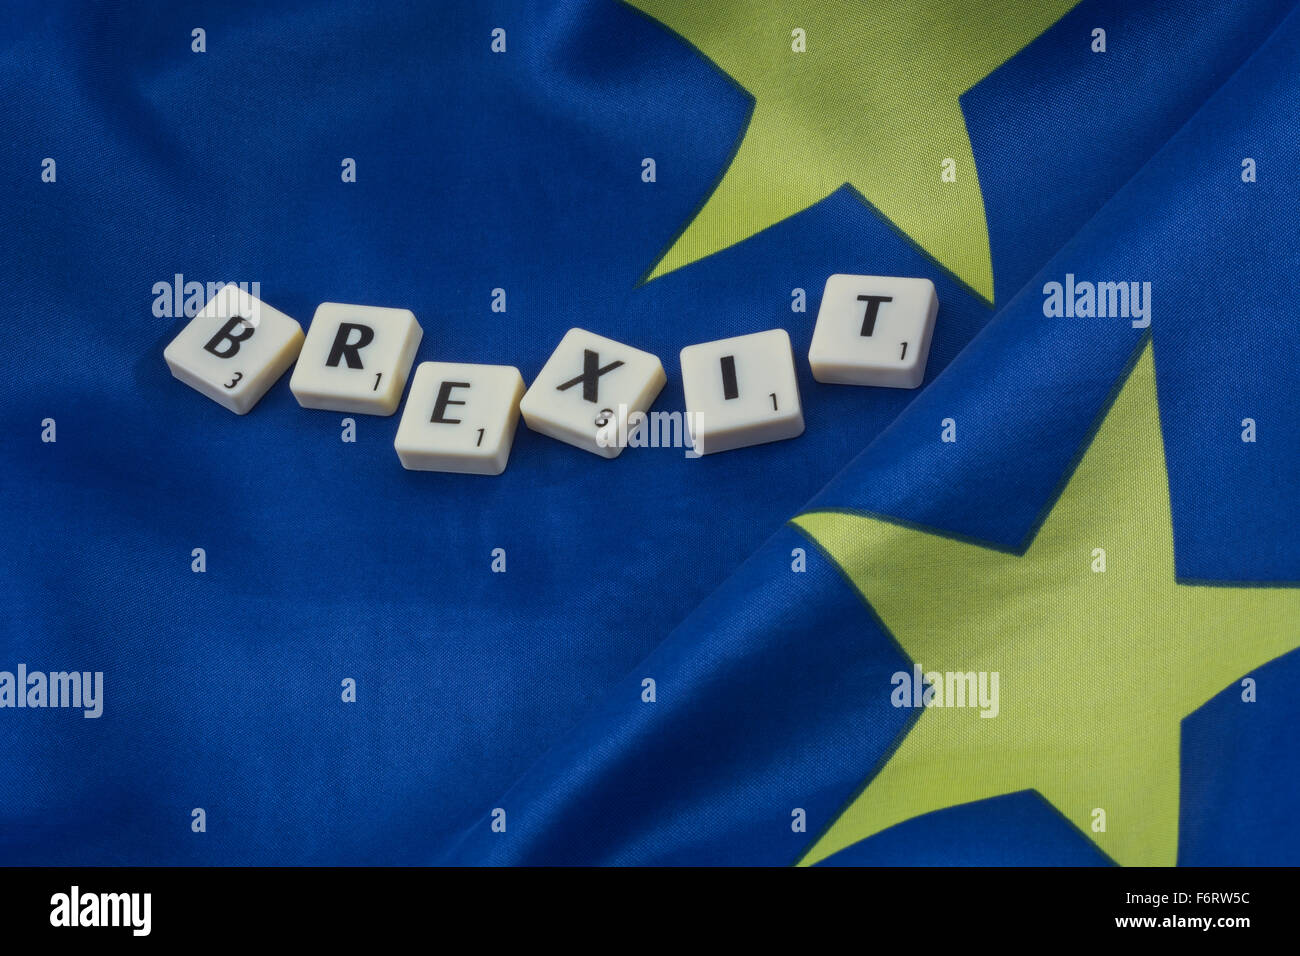 Brexit concept. European Union / EU flag with the letters Brexit - in reference to the UK referendum on leaving - Stock Image